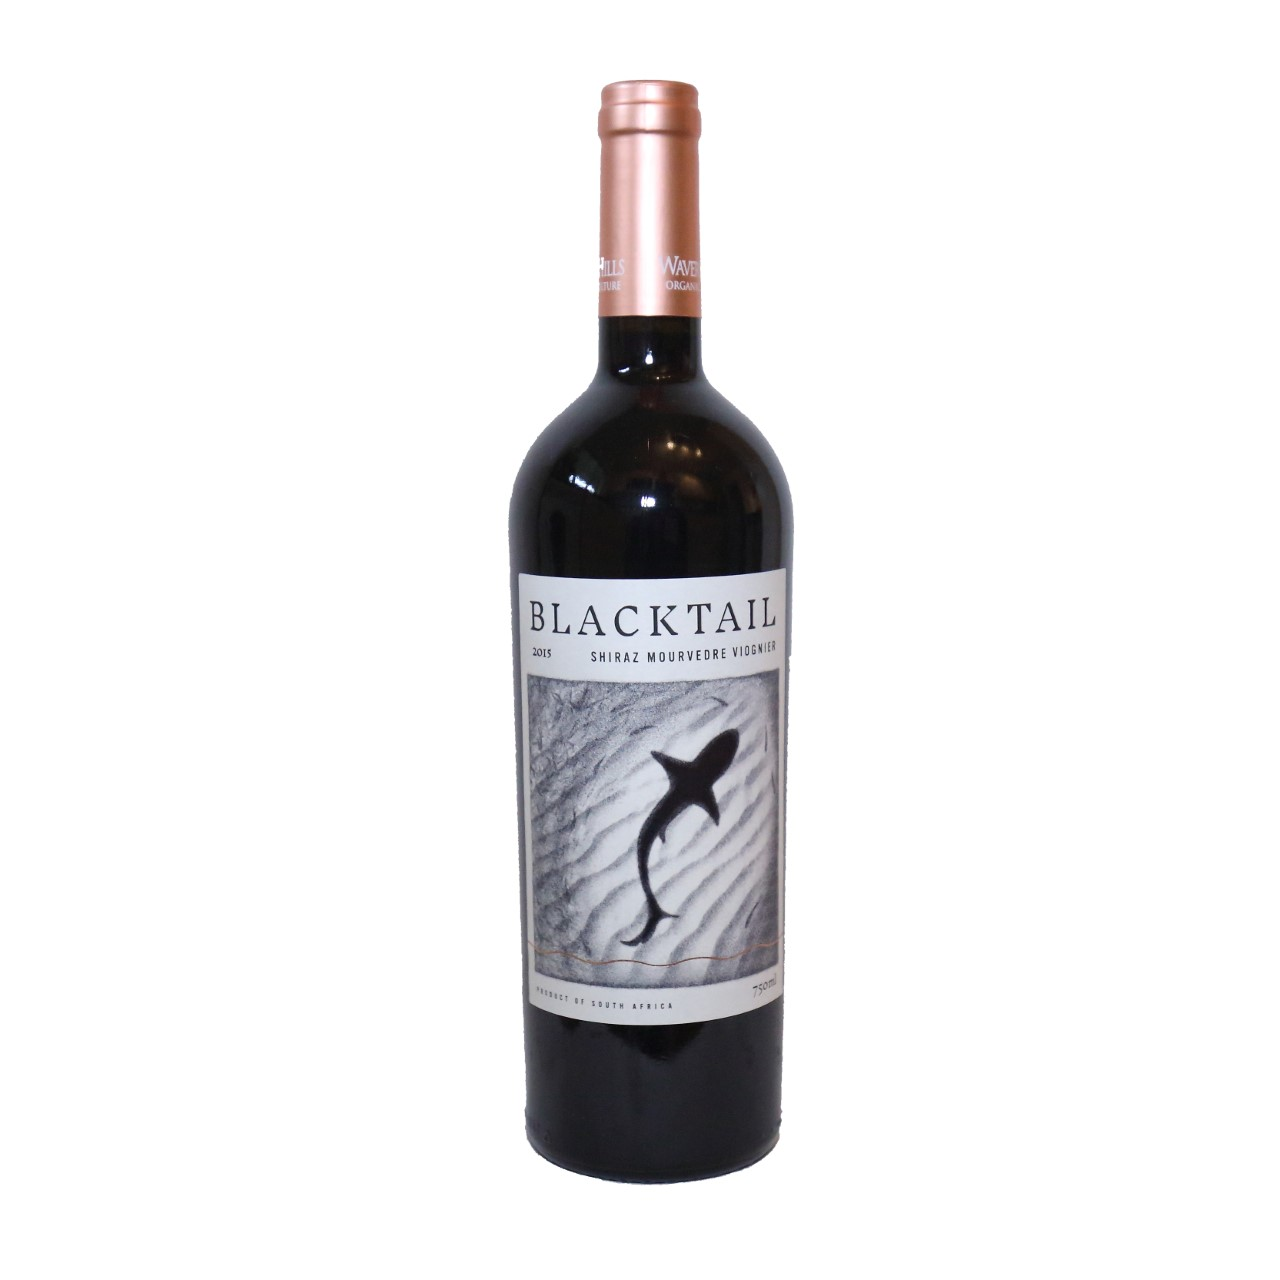 Blacktail Shiraz Mourvedre Viognier 2016